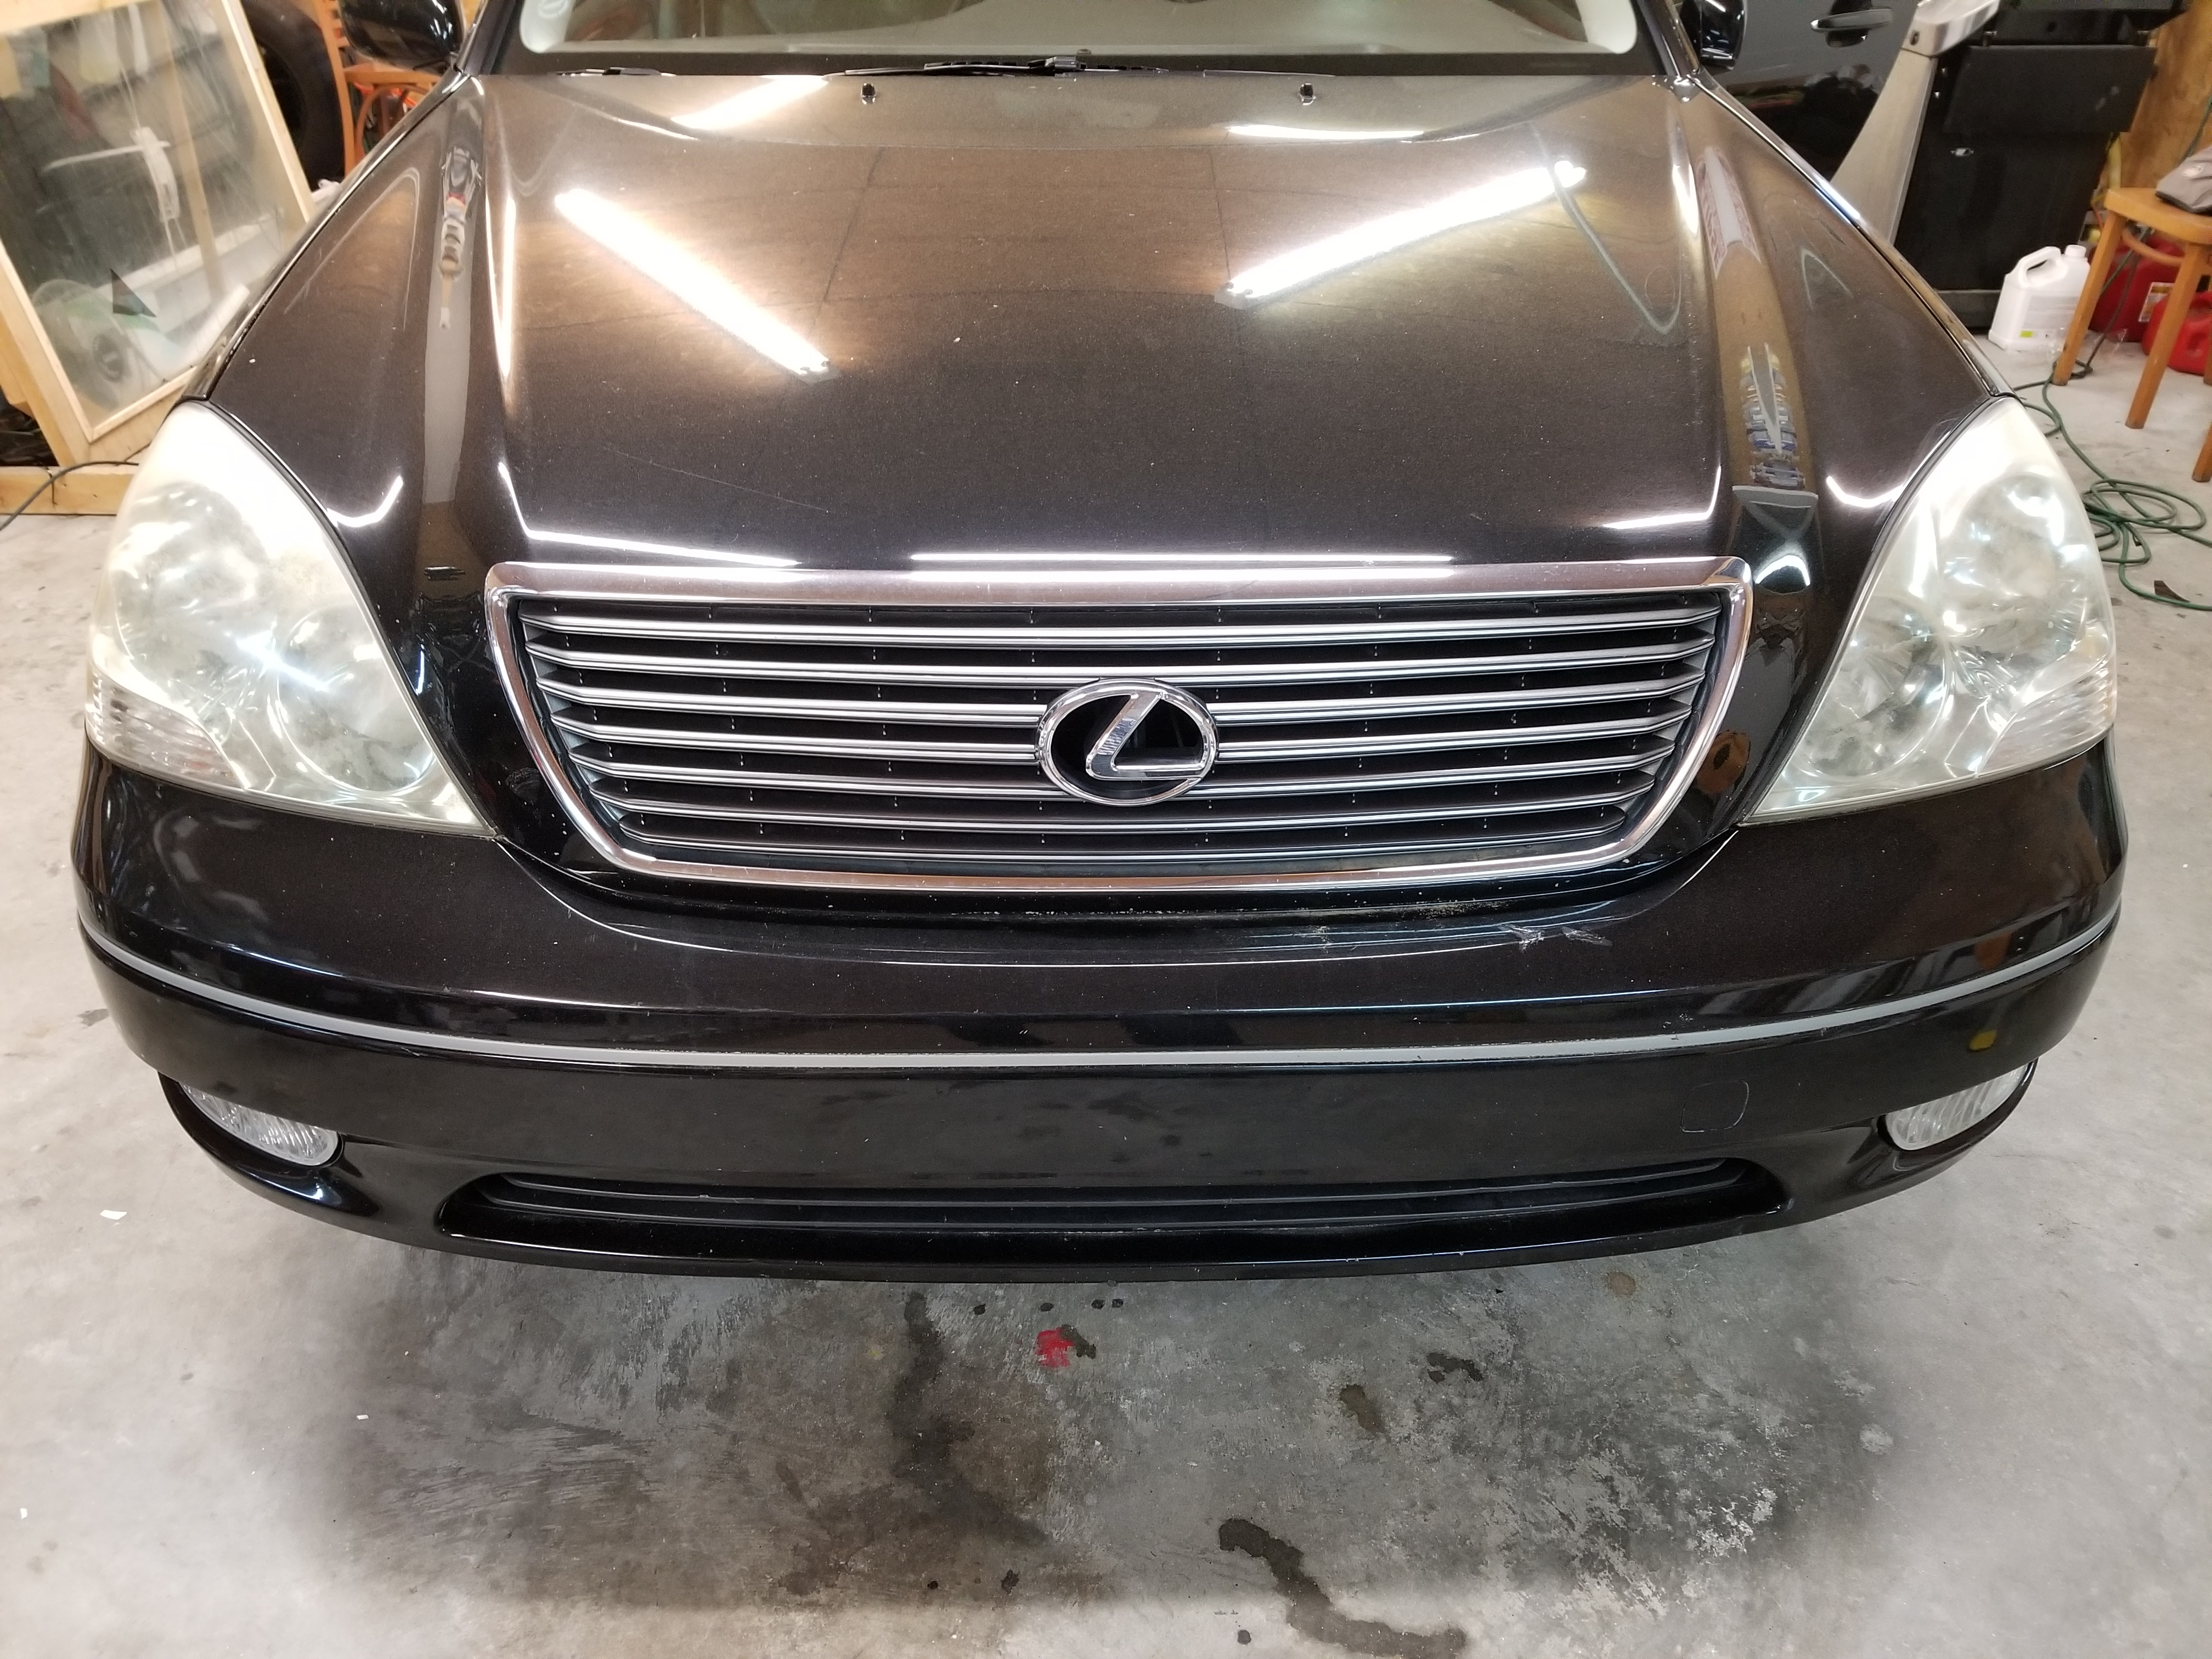 Lexus Headlights Before